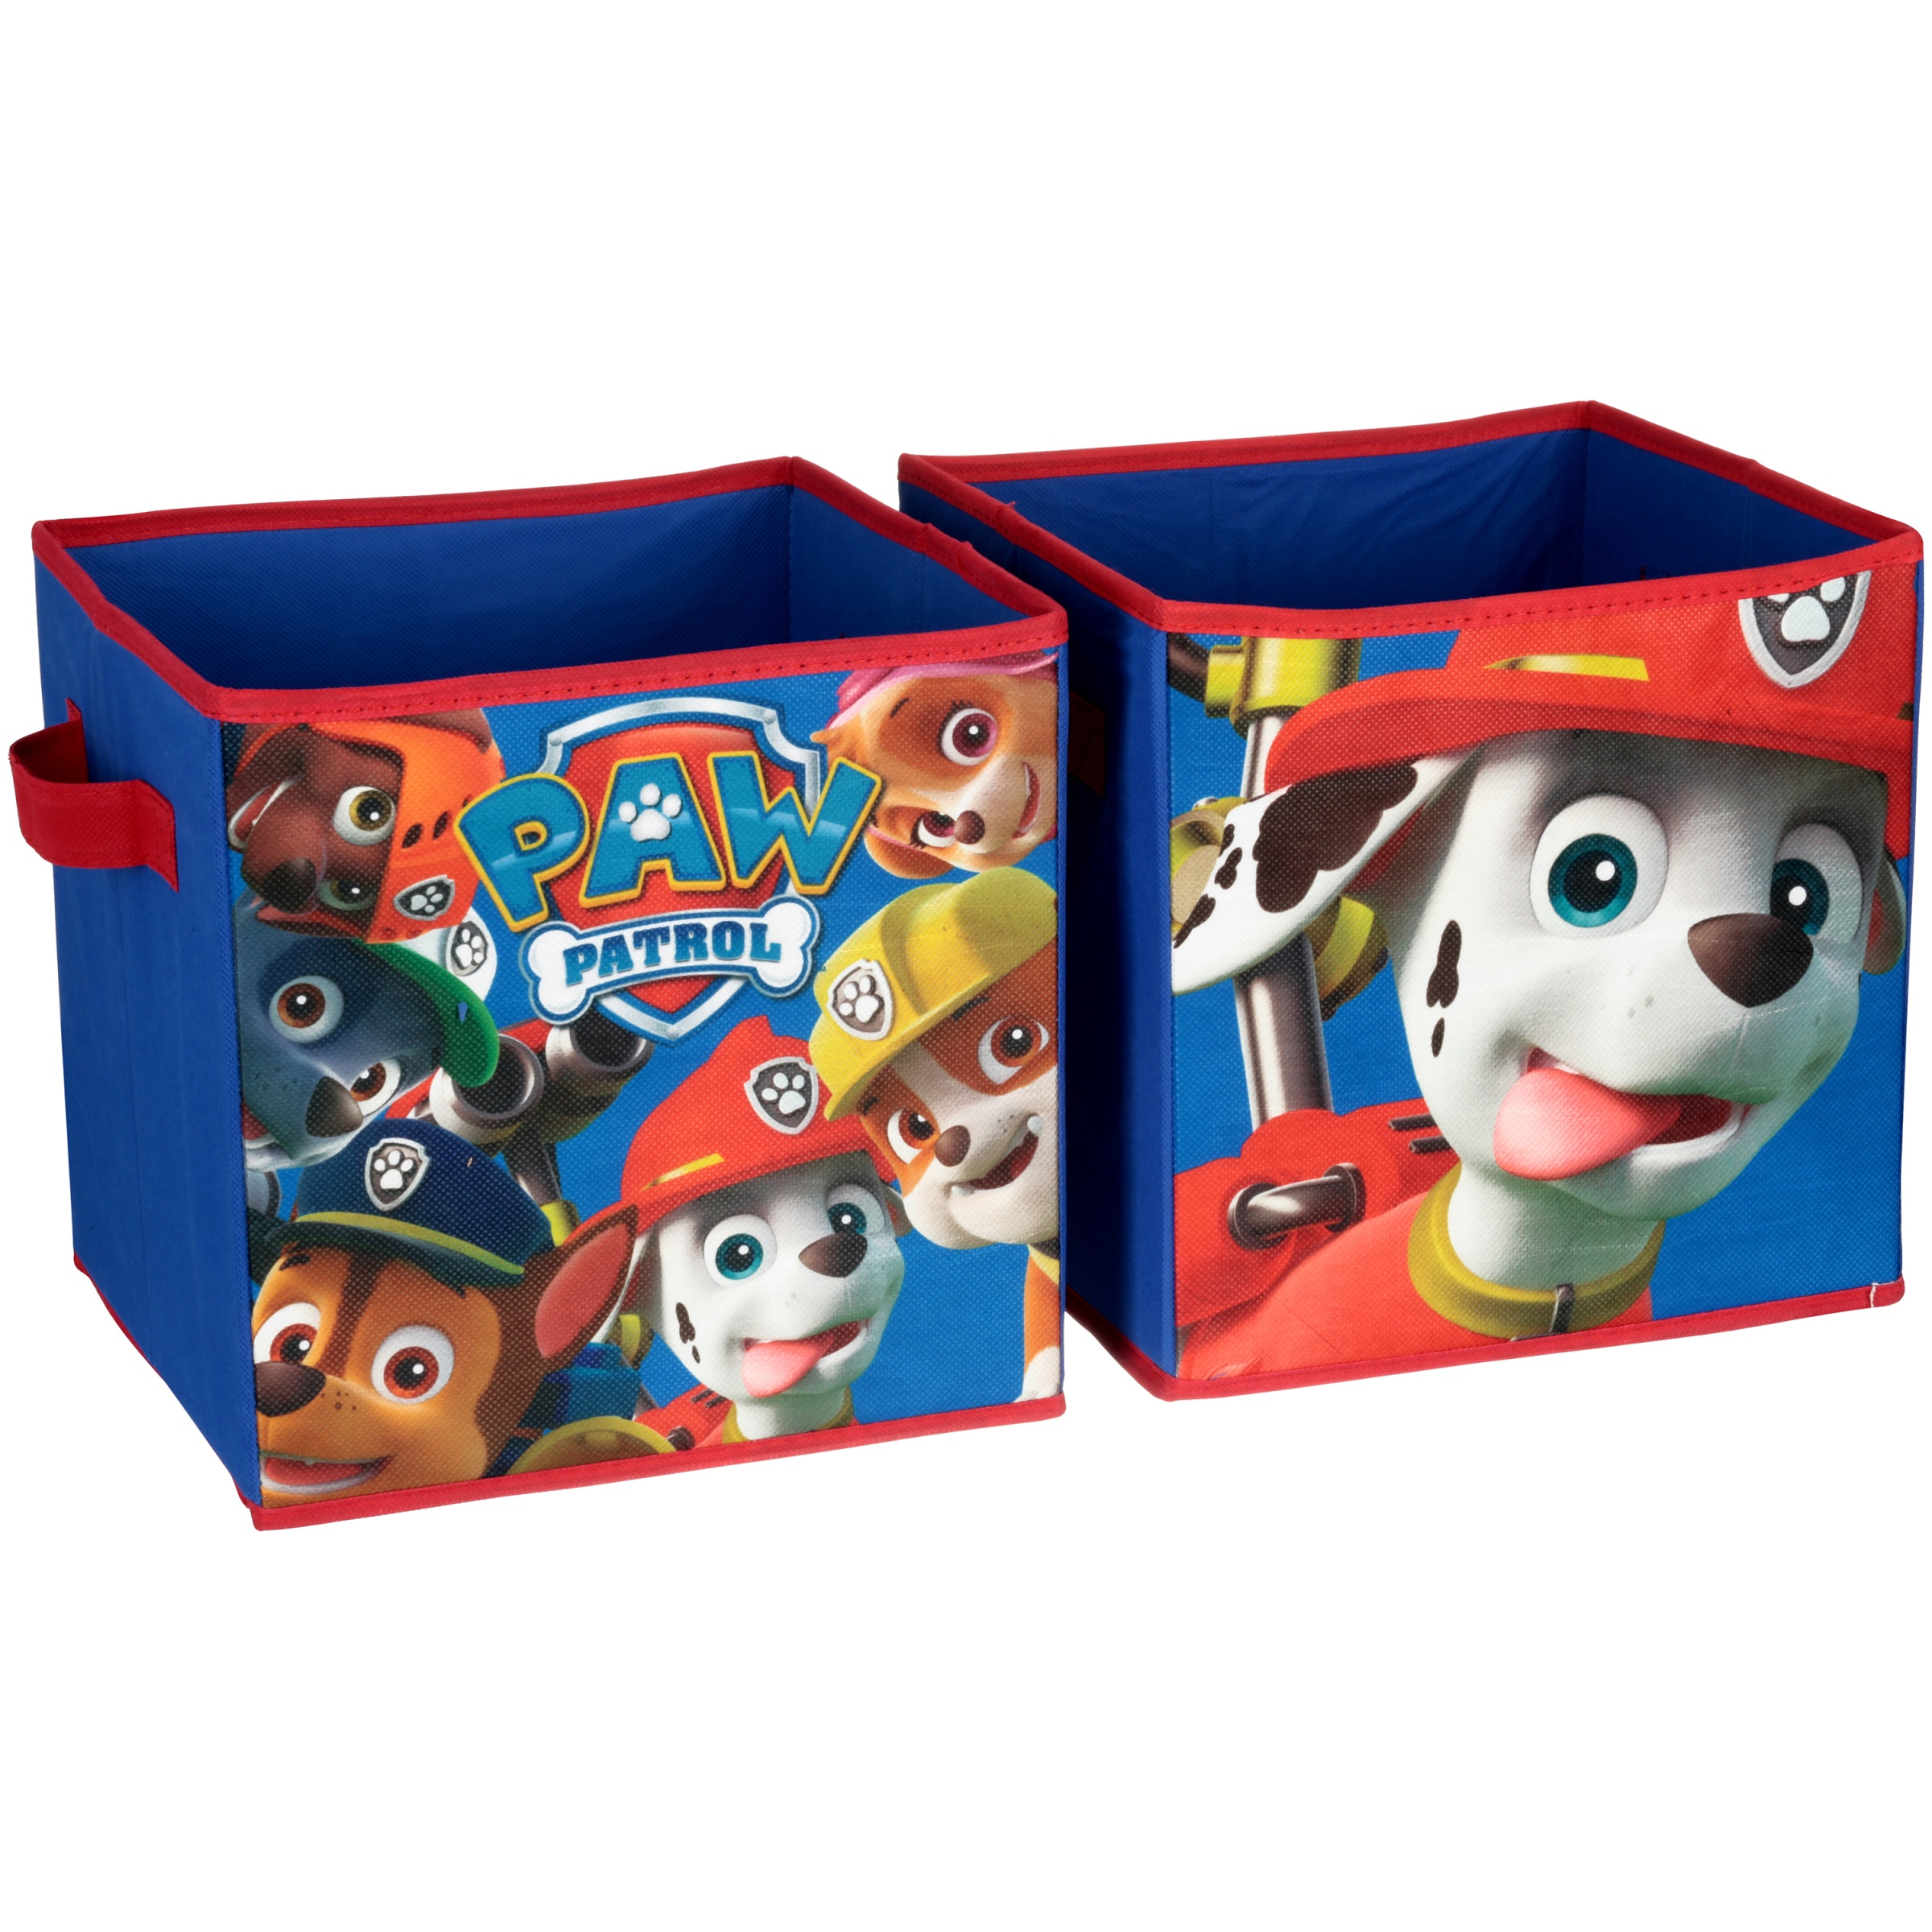 Nickelodeon Paw Patrol Collapsible Storage Cubes 2 pc Pack